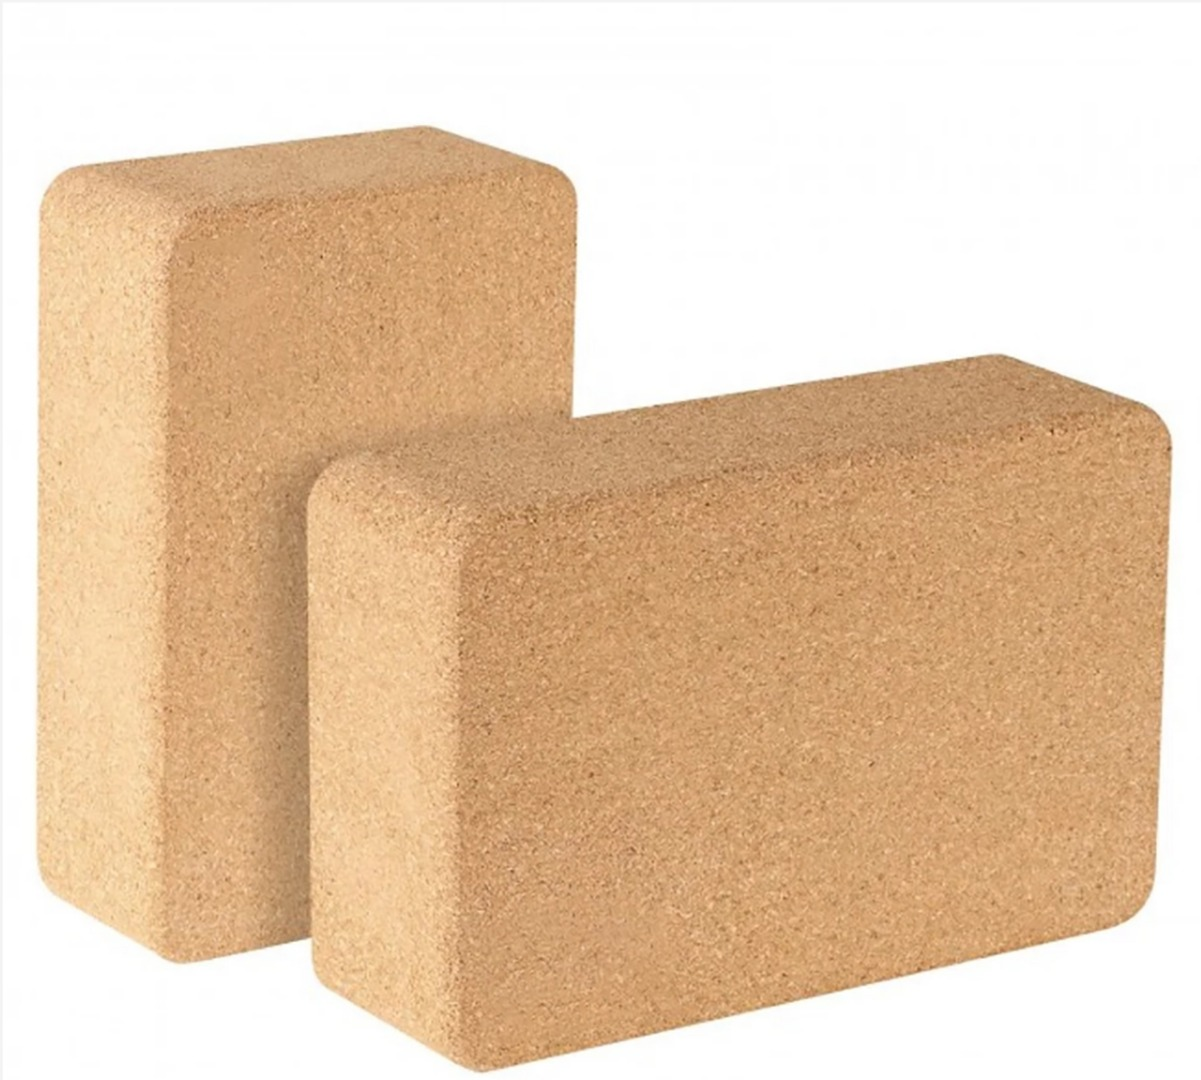 Eco Friendly Cork Yoga Block ( 1 x Yoga Block SIze: 7.5cm x 15.0cm x 22.5cm)